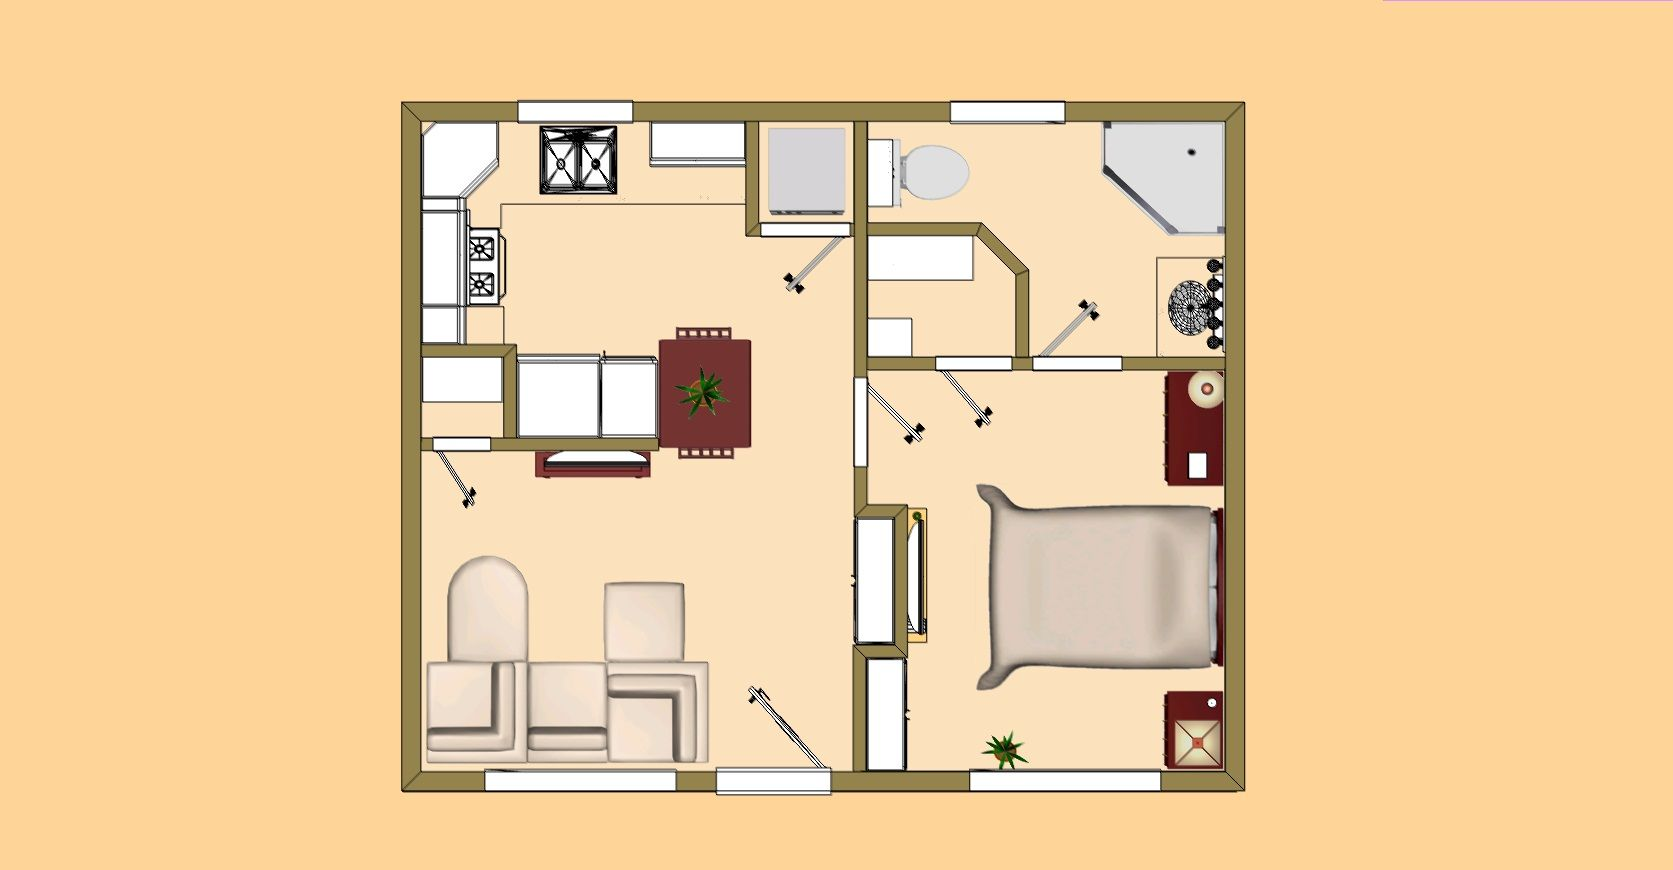 Pin By Barbara Kirchbaum On Tiny Homes Small House Floor Plans Small House Plans Cottage Floor Plans